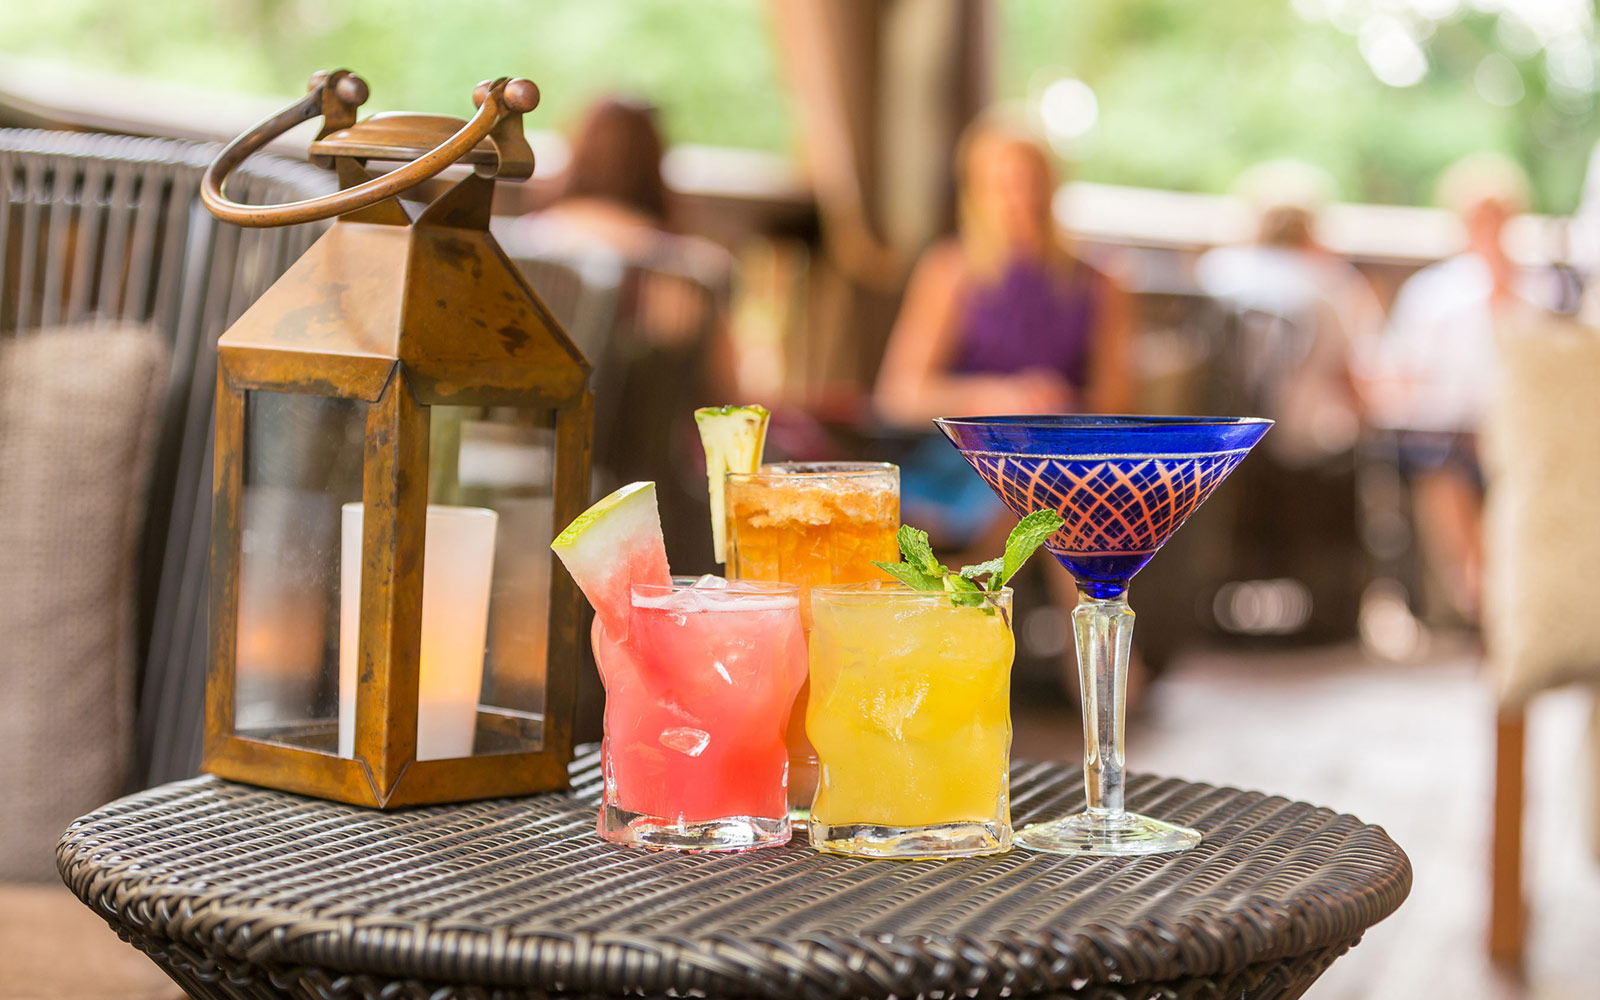 The 30 Best Drinks You Can Have at Disney World